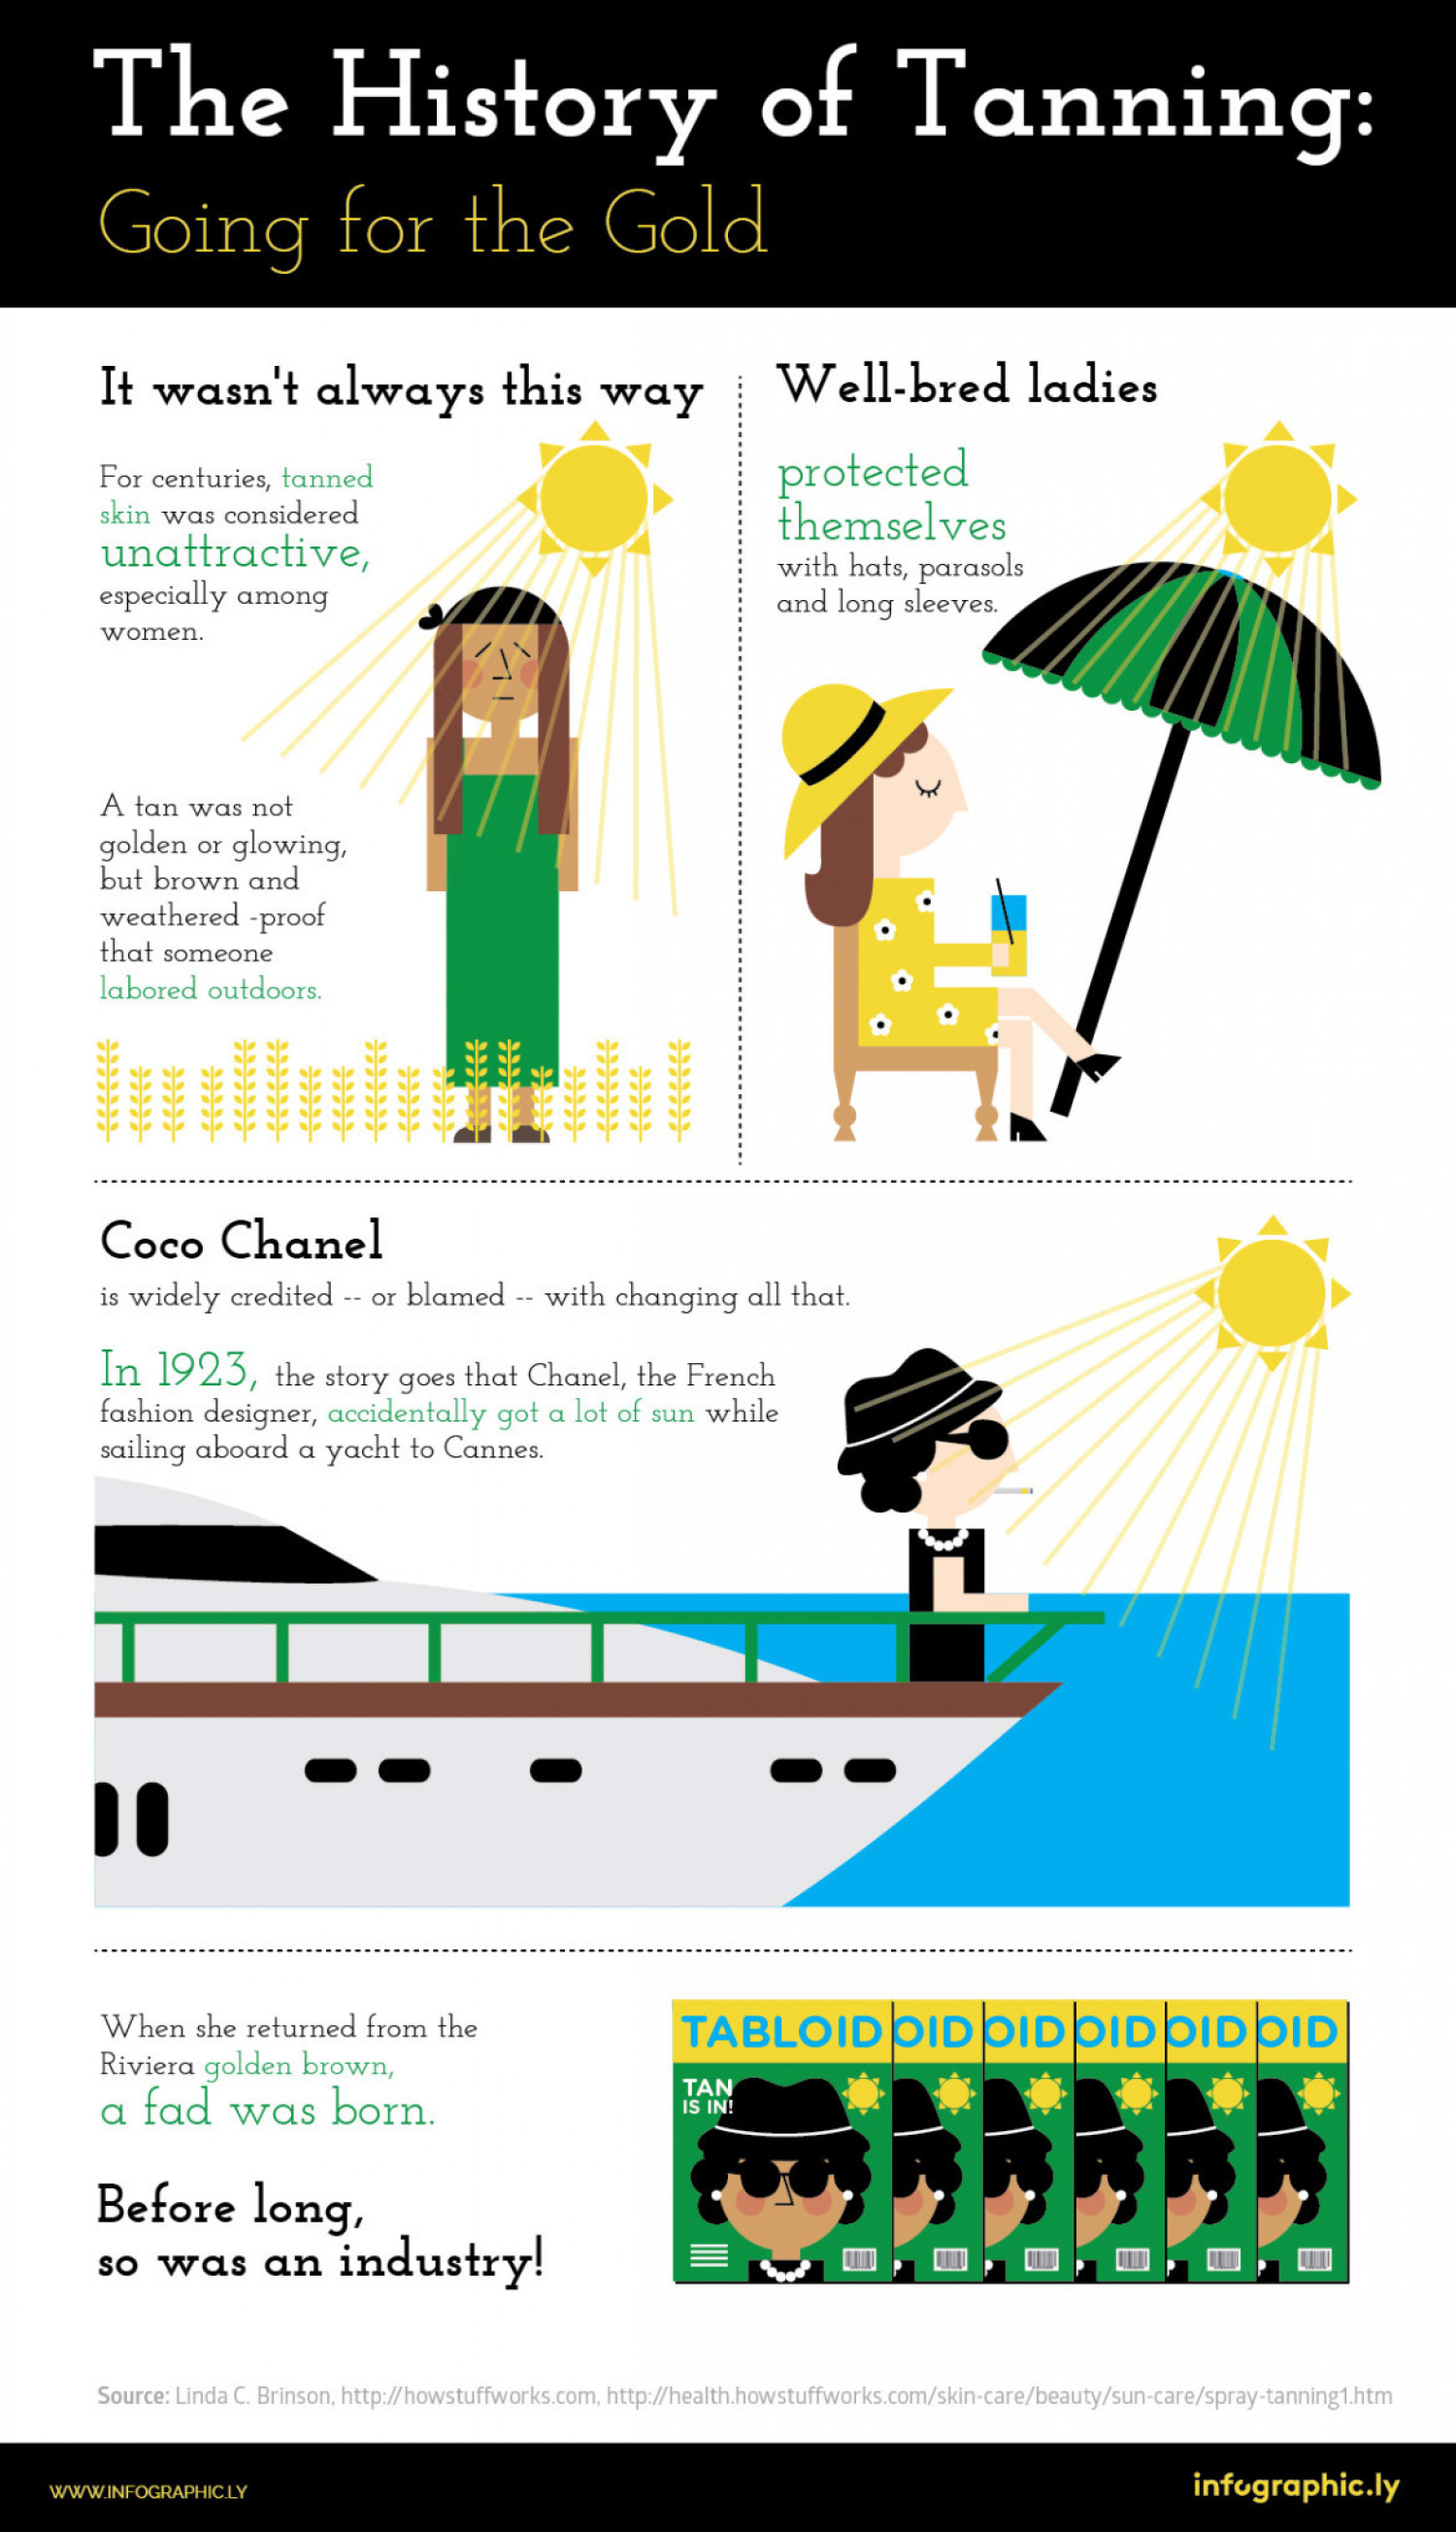 The History of Tanning Infographic